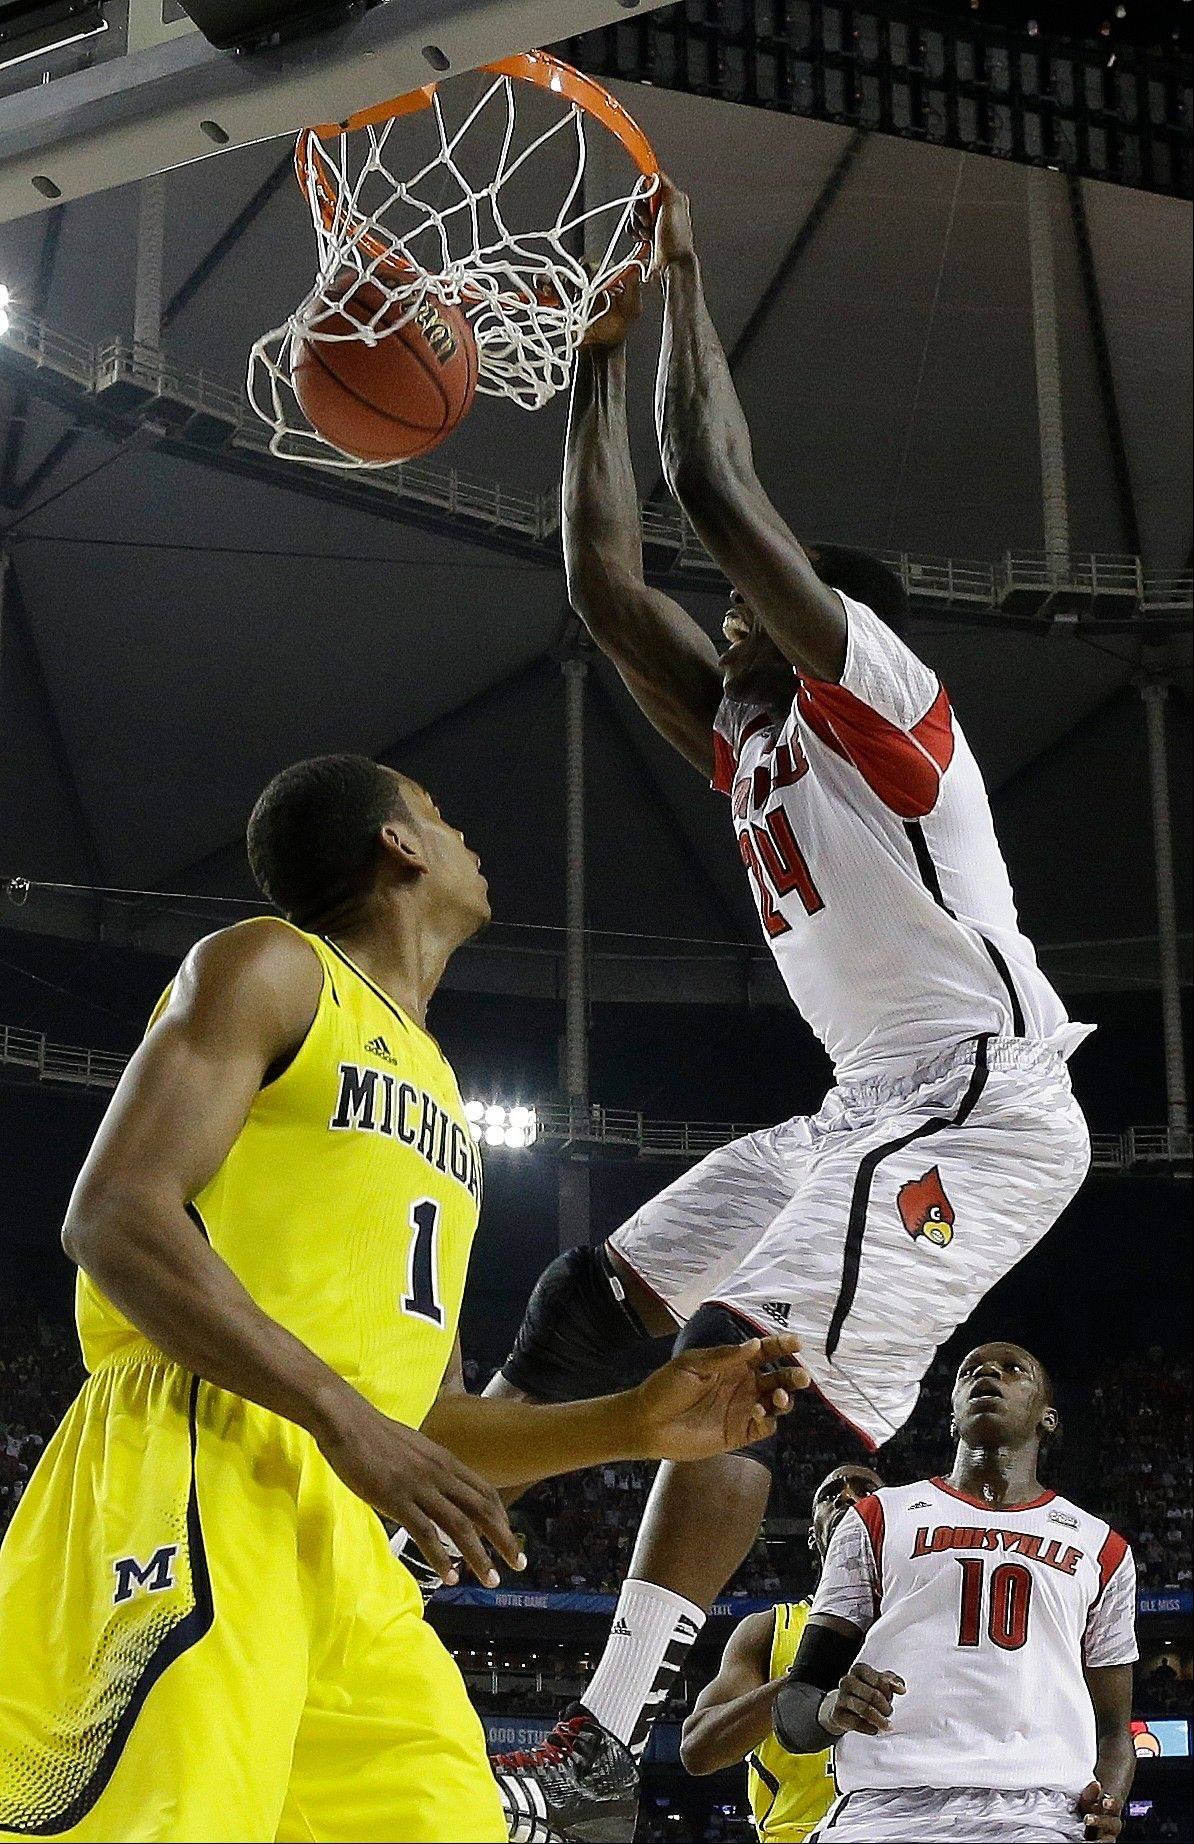 Louisville forward Montrezl Harrell (24) dunks the ball against Michigan forward Glenn Robinson III (1) during the first half of the NCAA Final Four tournament college basketball championship game Monday, April 8, 2013, in Atlanta.